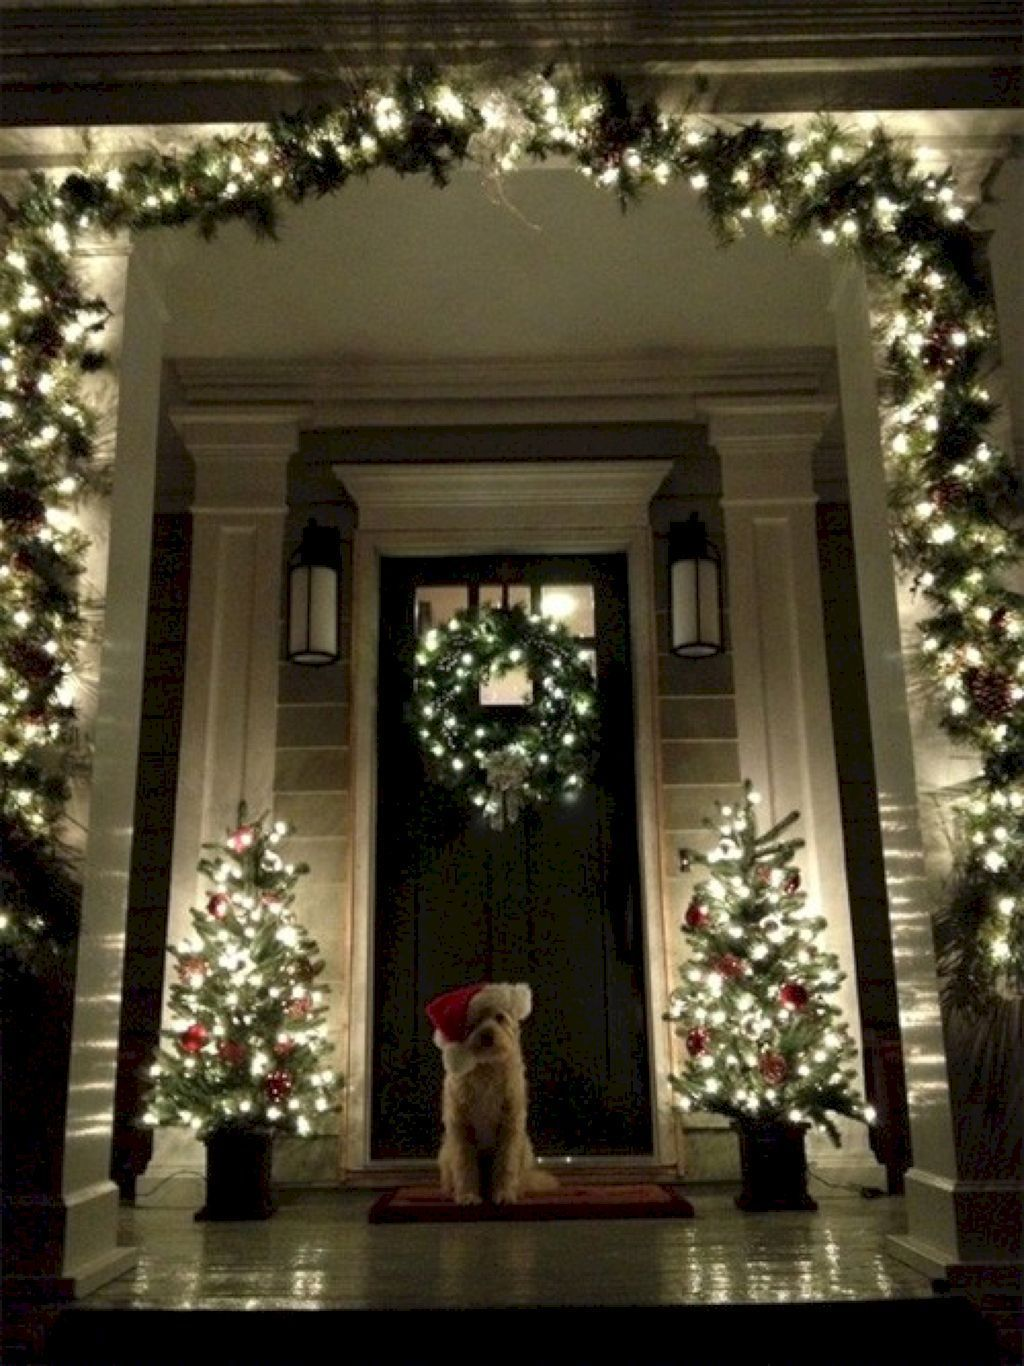 45 Awesome Christmas Front Porch Decor Ideas & 45 Awesome Christmas Front Porch Decor Ideas   Christmas decor and ...